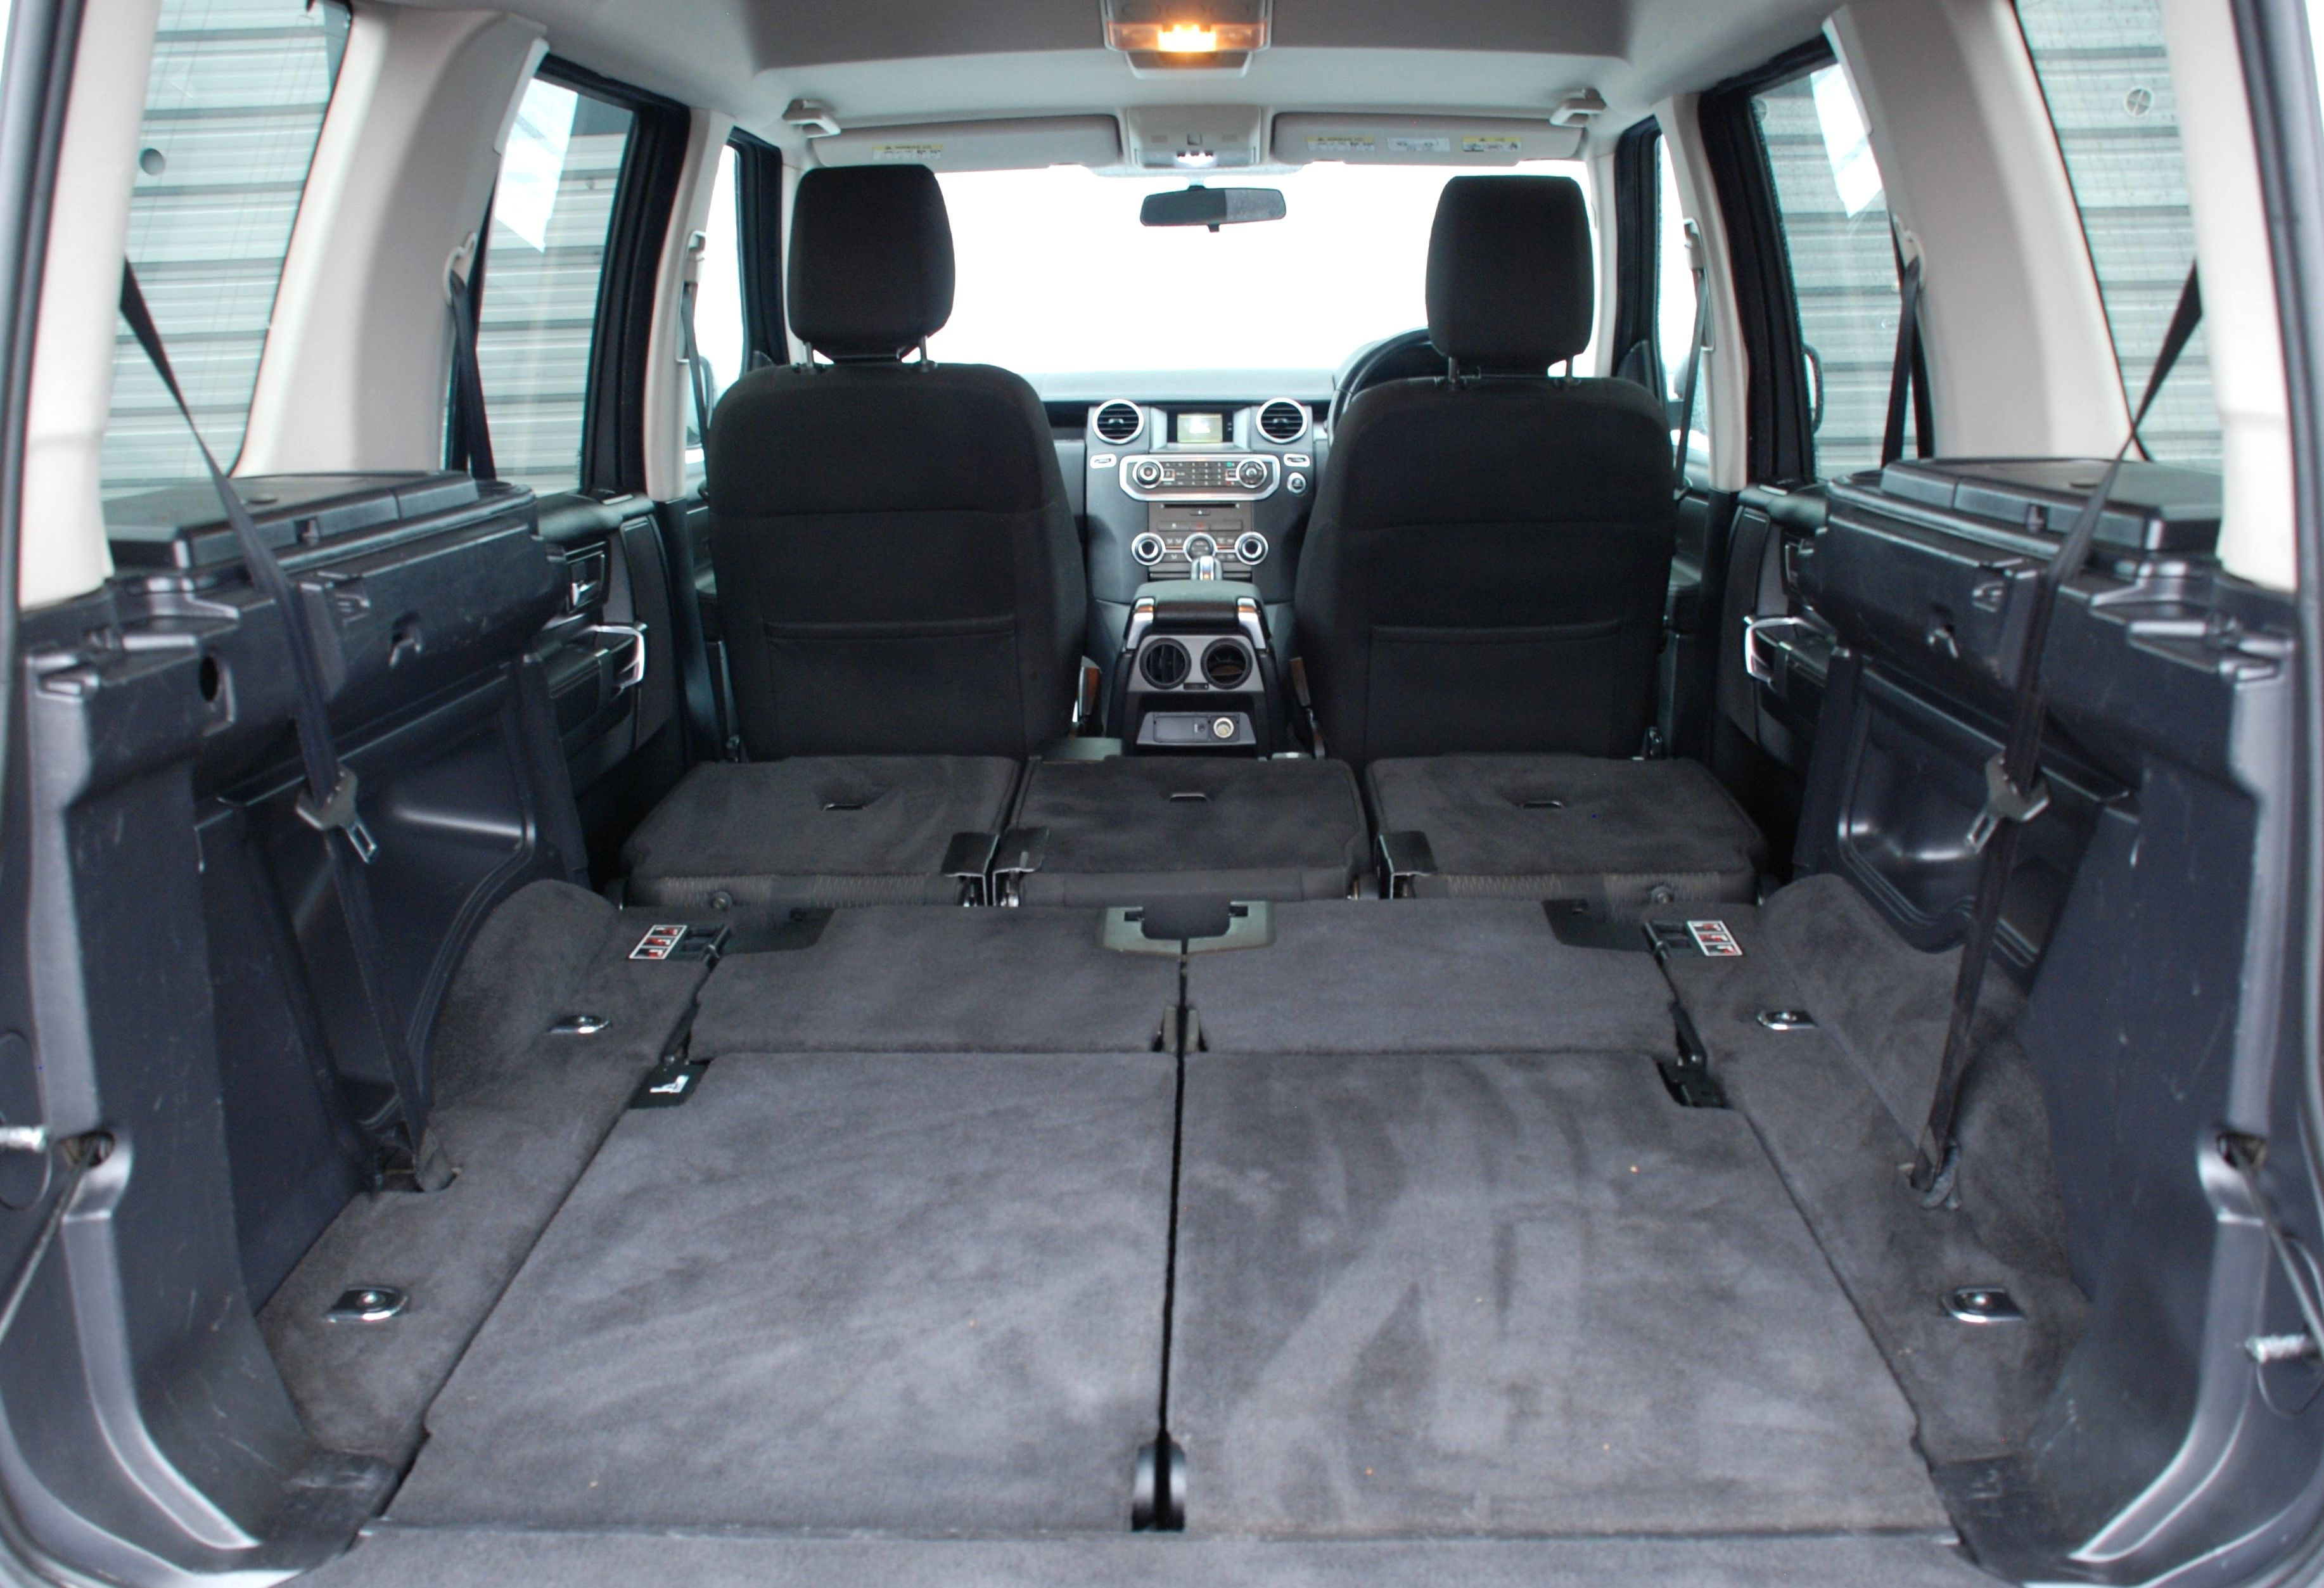 Land Rover Discovery Rear Seat Conversion - Seats Fold Fully Flat!